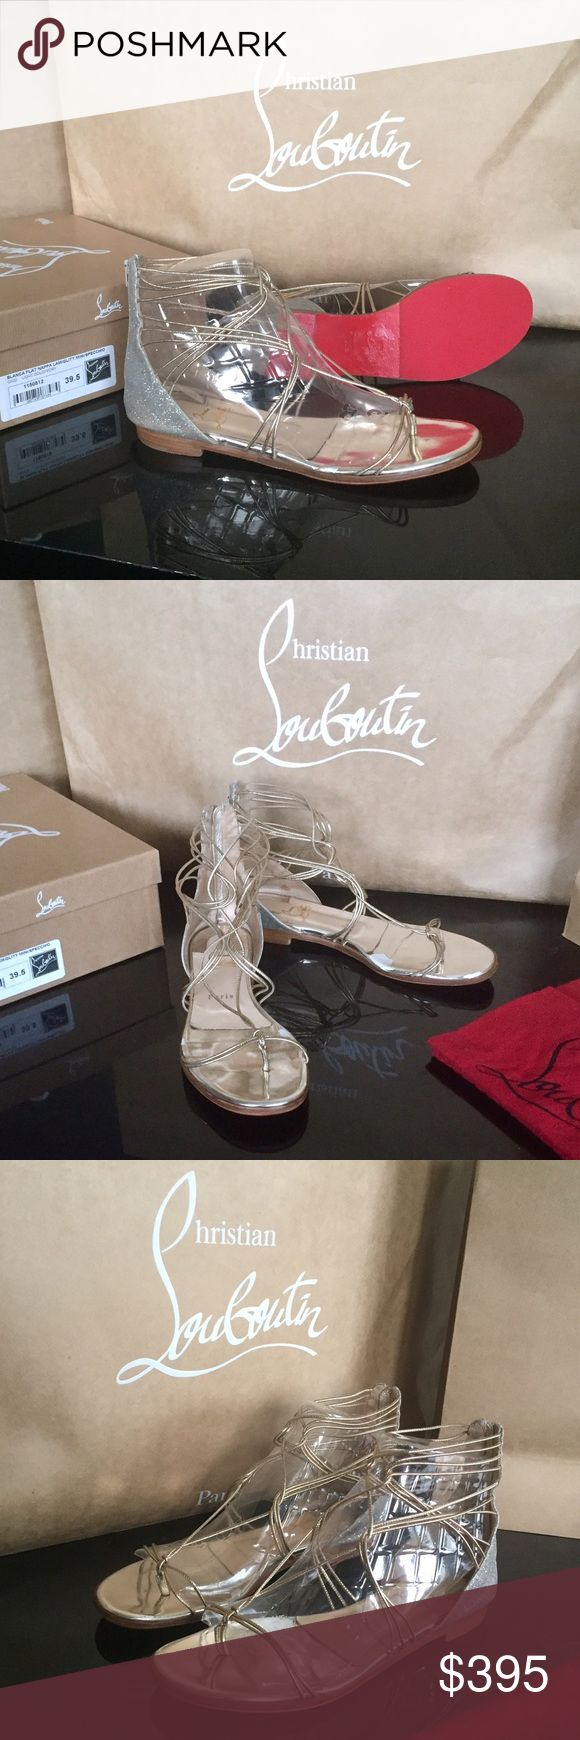 Christian Louboutin Blanca Light Gold/Ivory Sandal Christian Louboutin Blanca Flat Nappa Light Gold/Ivory Metallic Sandals.Metallic Leather rope straps wrap around the foot and ankle. Light gold glitter heel with zipper. Padded footbed. Includes red rubber padding on the bottoms to prevent slipping and to protect from wear, which was an additional $45. These are pre-worn with 2 spots that peeled on the footbed (as reflected in price). Original price:$957.65 (please refer to receipt in…